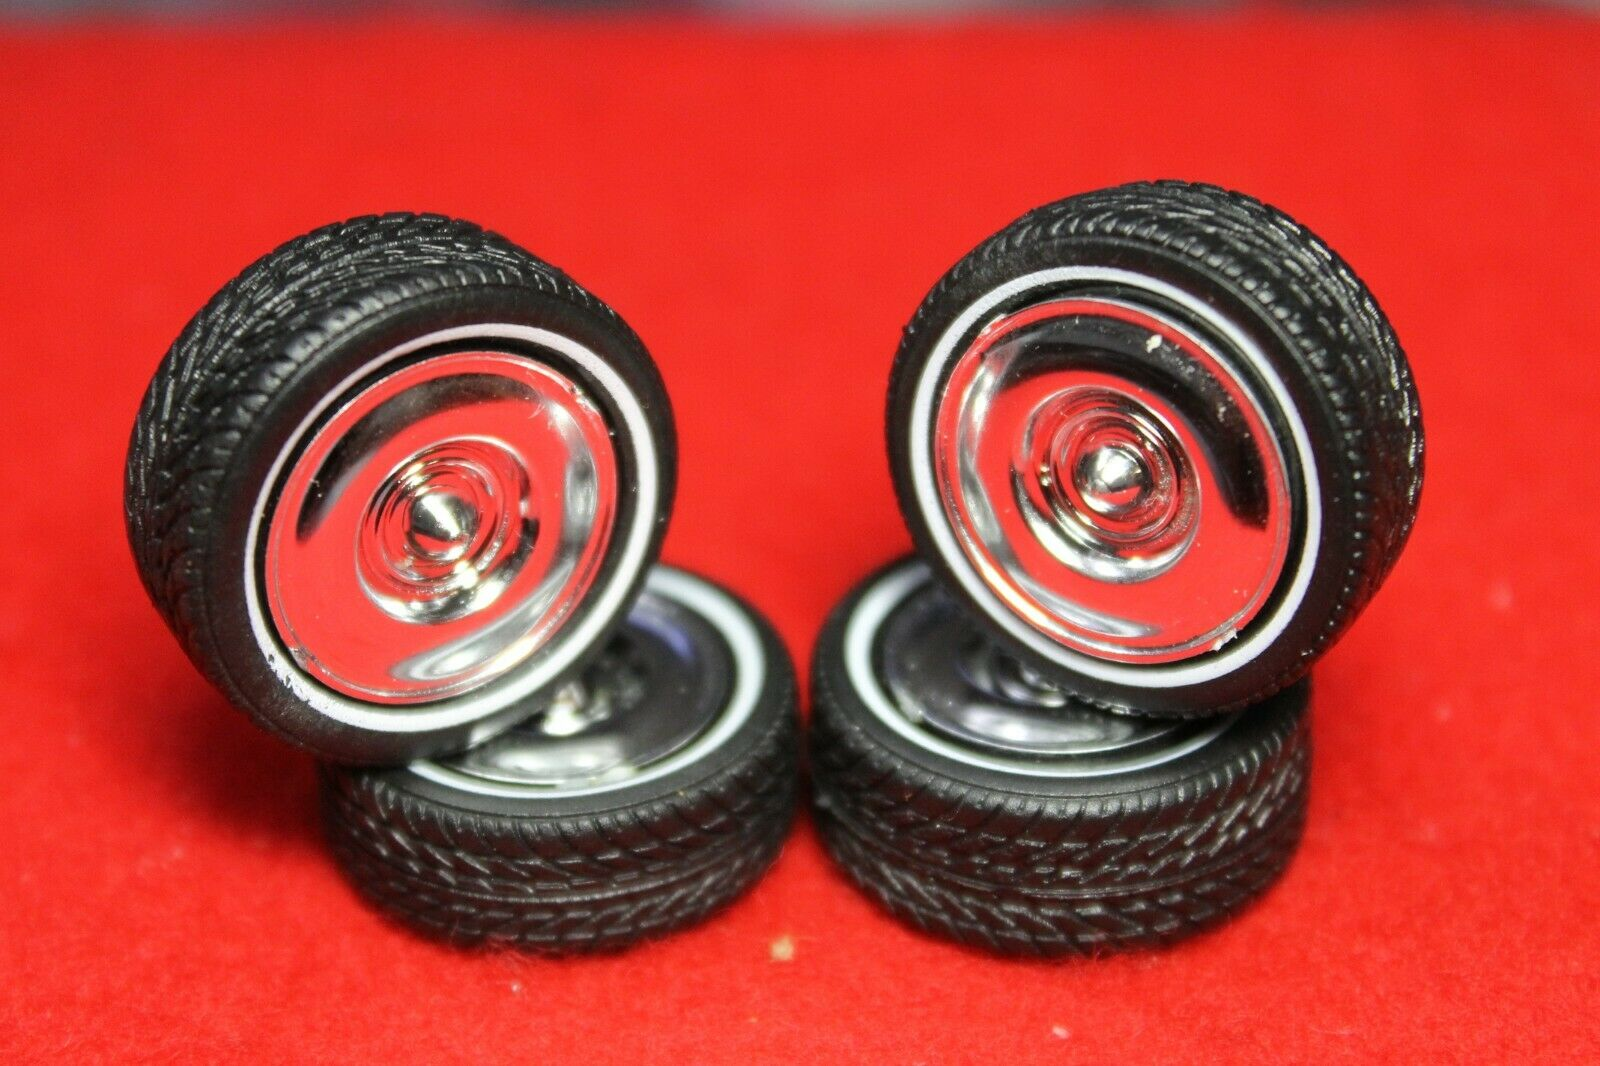 Car Parts - model car parts (4 ) WIDE TRAC -LO PROFILE TIRES AND 4 BEAUTIFUL CHROME MAGS